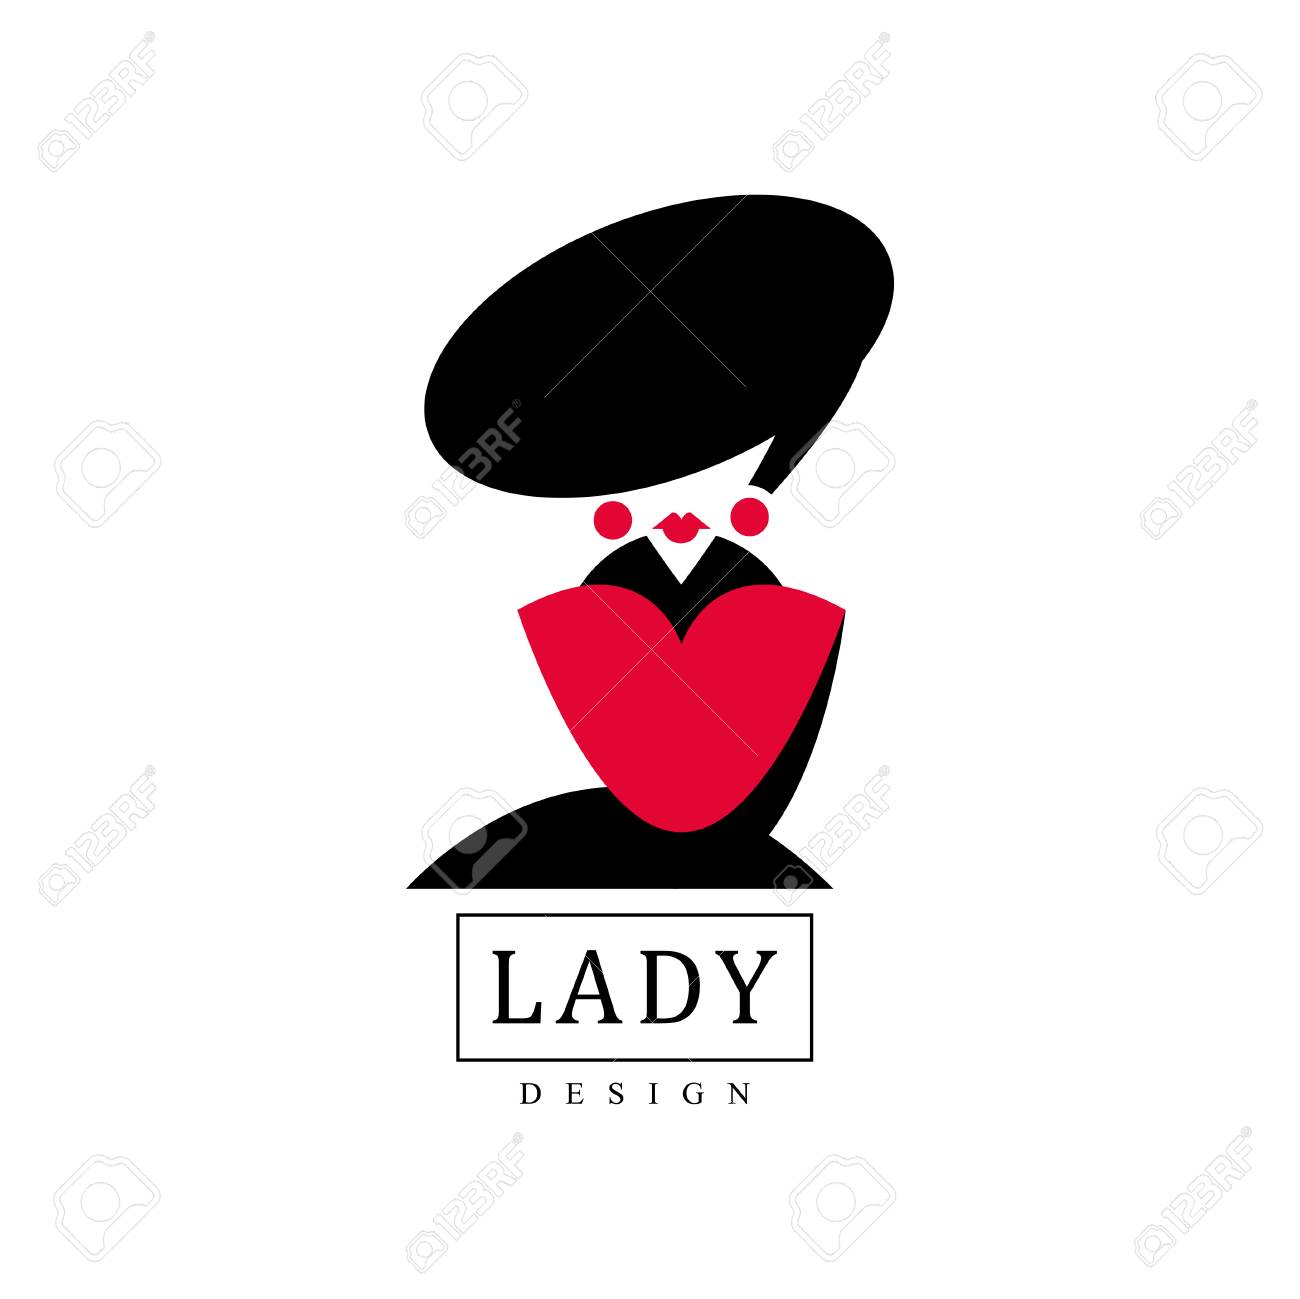 Lady Design Logo Template Fashion Beauty Salon Studio Or Boutique Royalty Free Cliparts Vectors And Stock Illustration Image 91685407